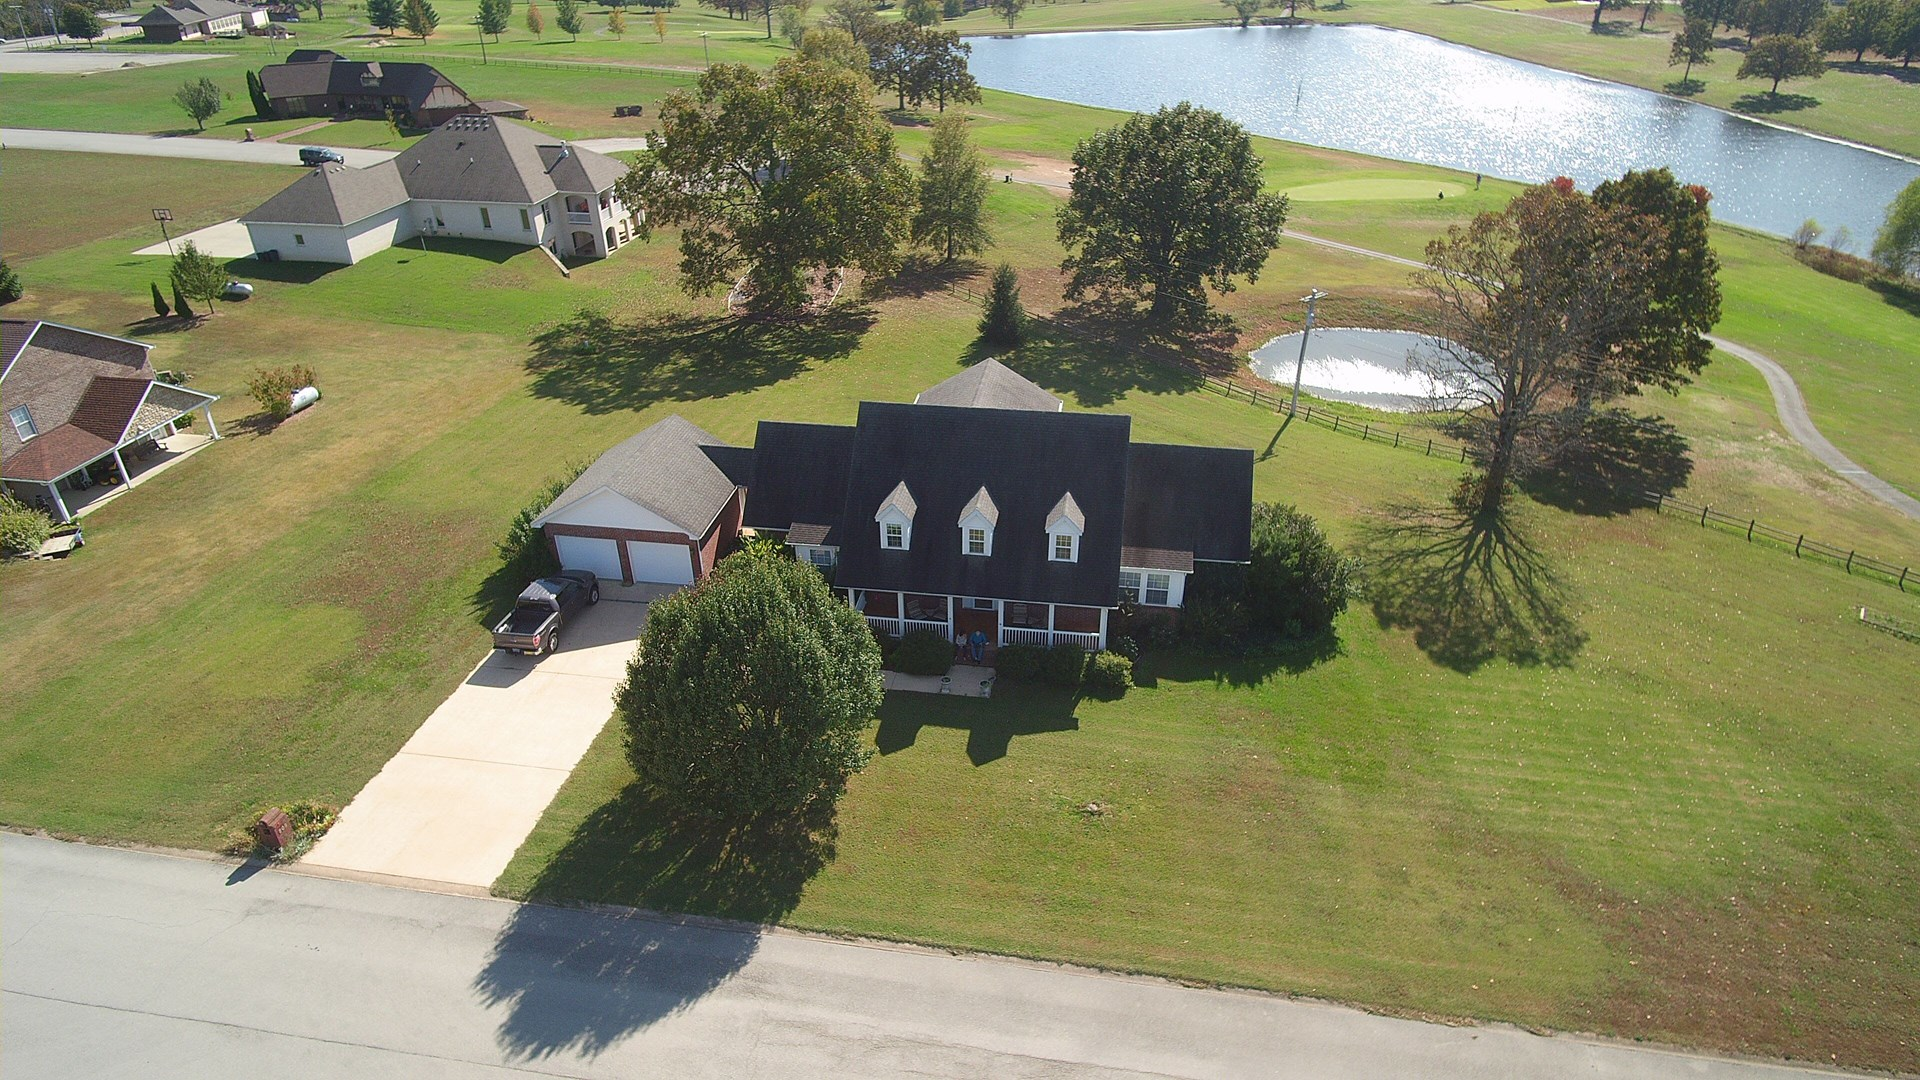 Golf Course Home in West Plains, MO - Howell County -5 BR